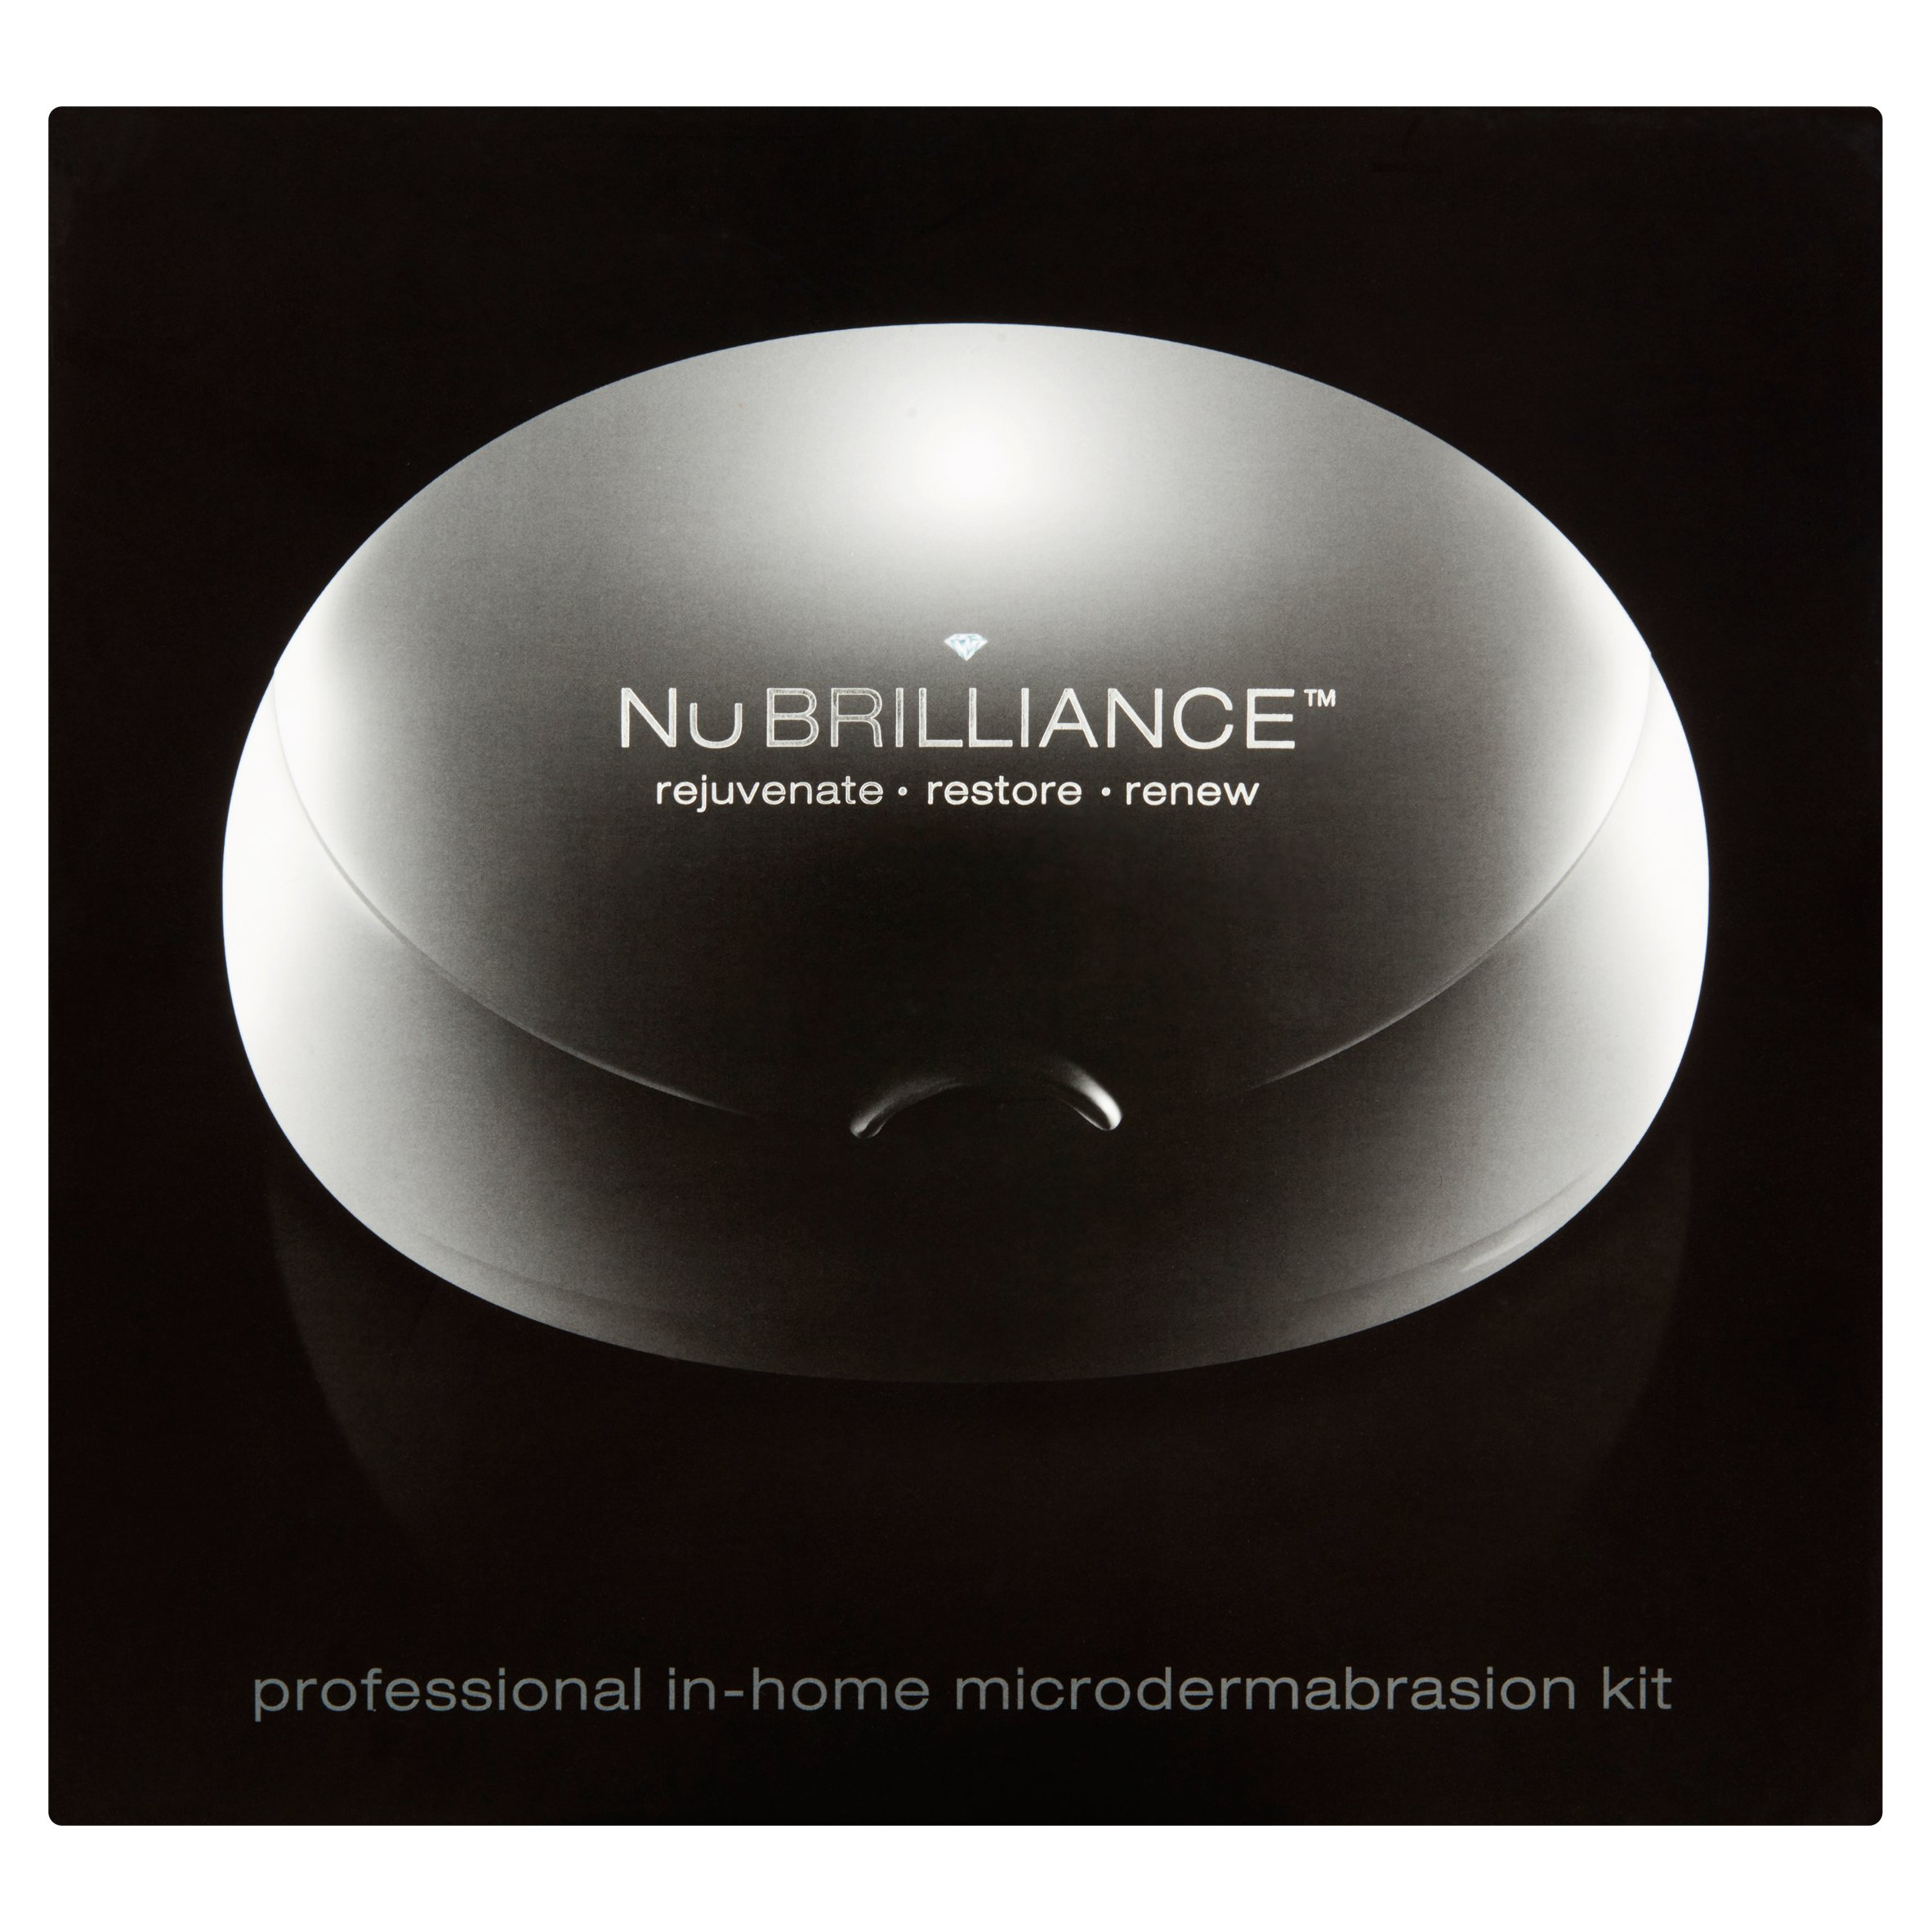 NuBrilliance Professional In-Home Microdermabrasion Kit, 34 Ct